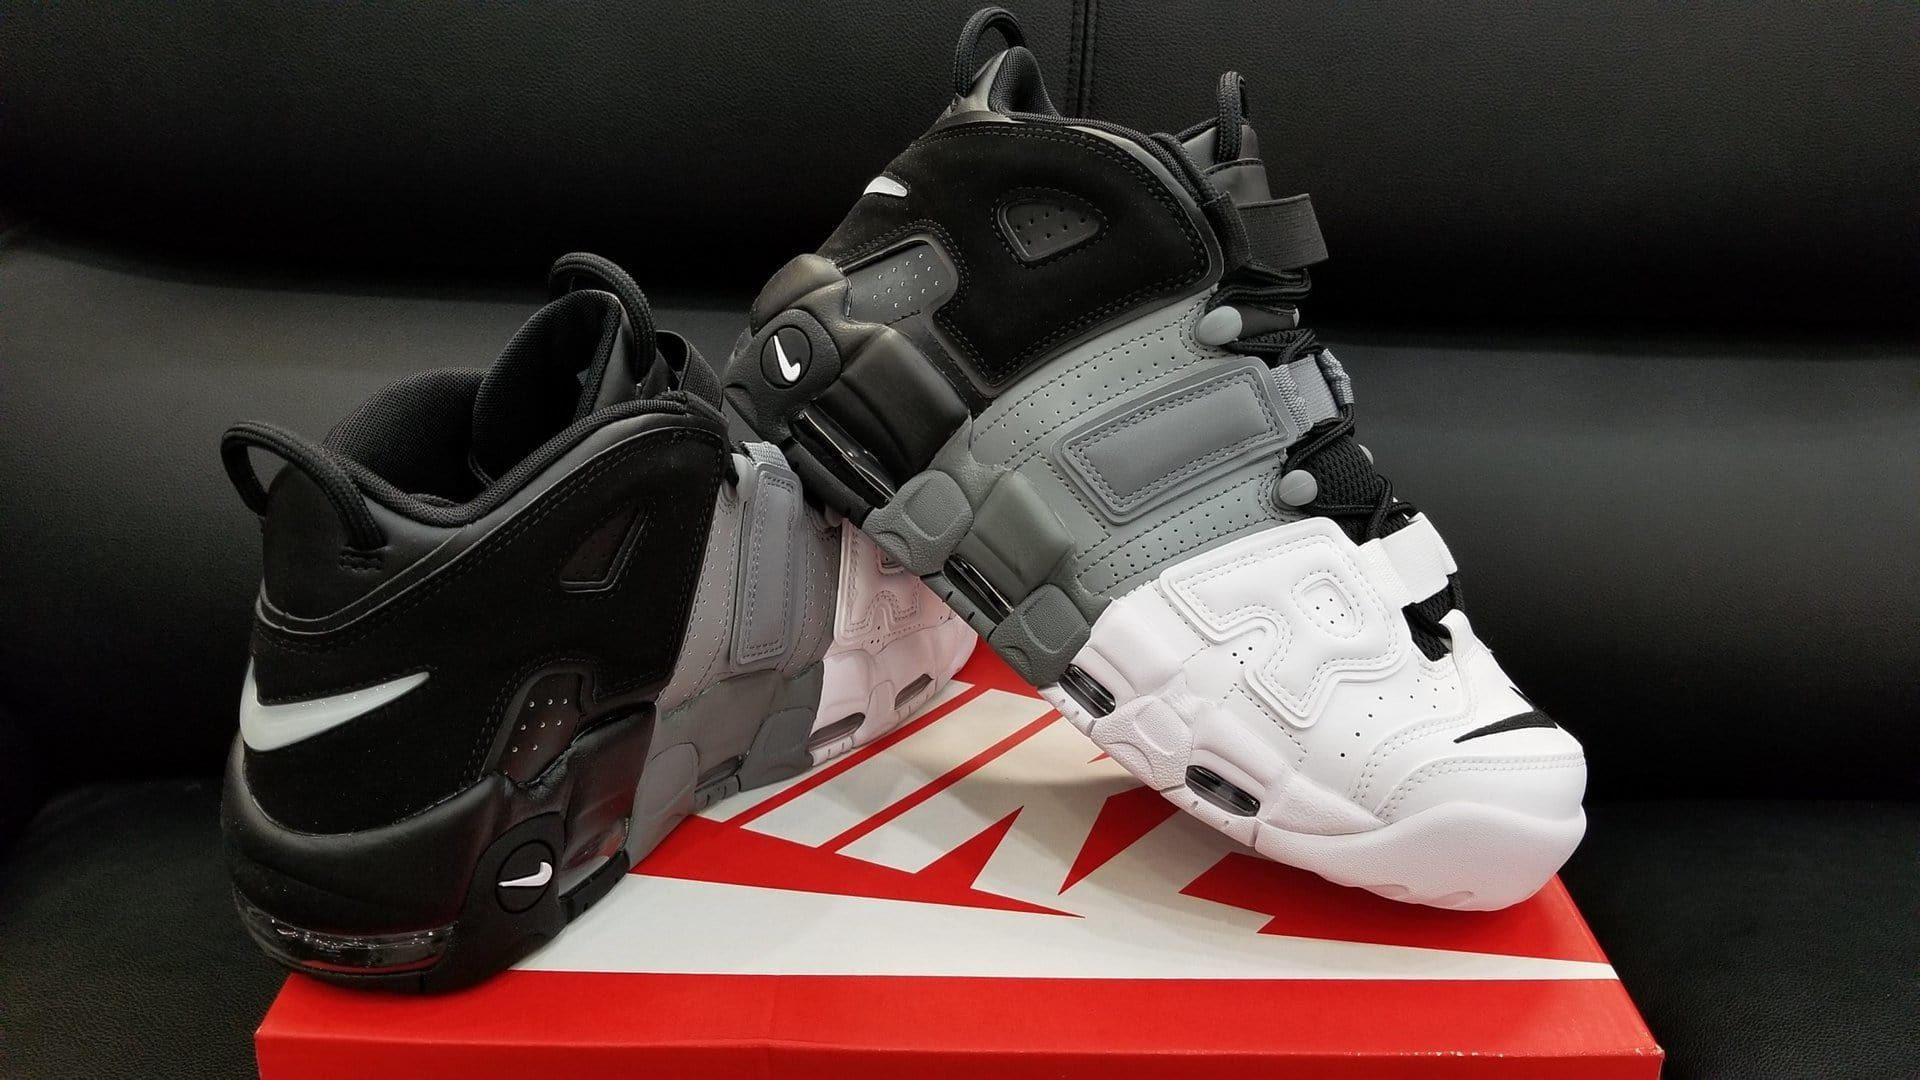 outlet store ab886 28a8e Nike Air More Uptempo Tri-Color Black Grey White Release Date Right 921948  002